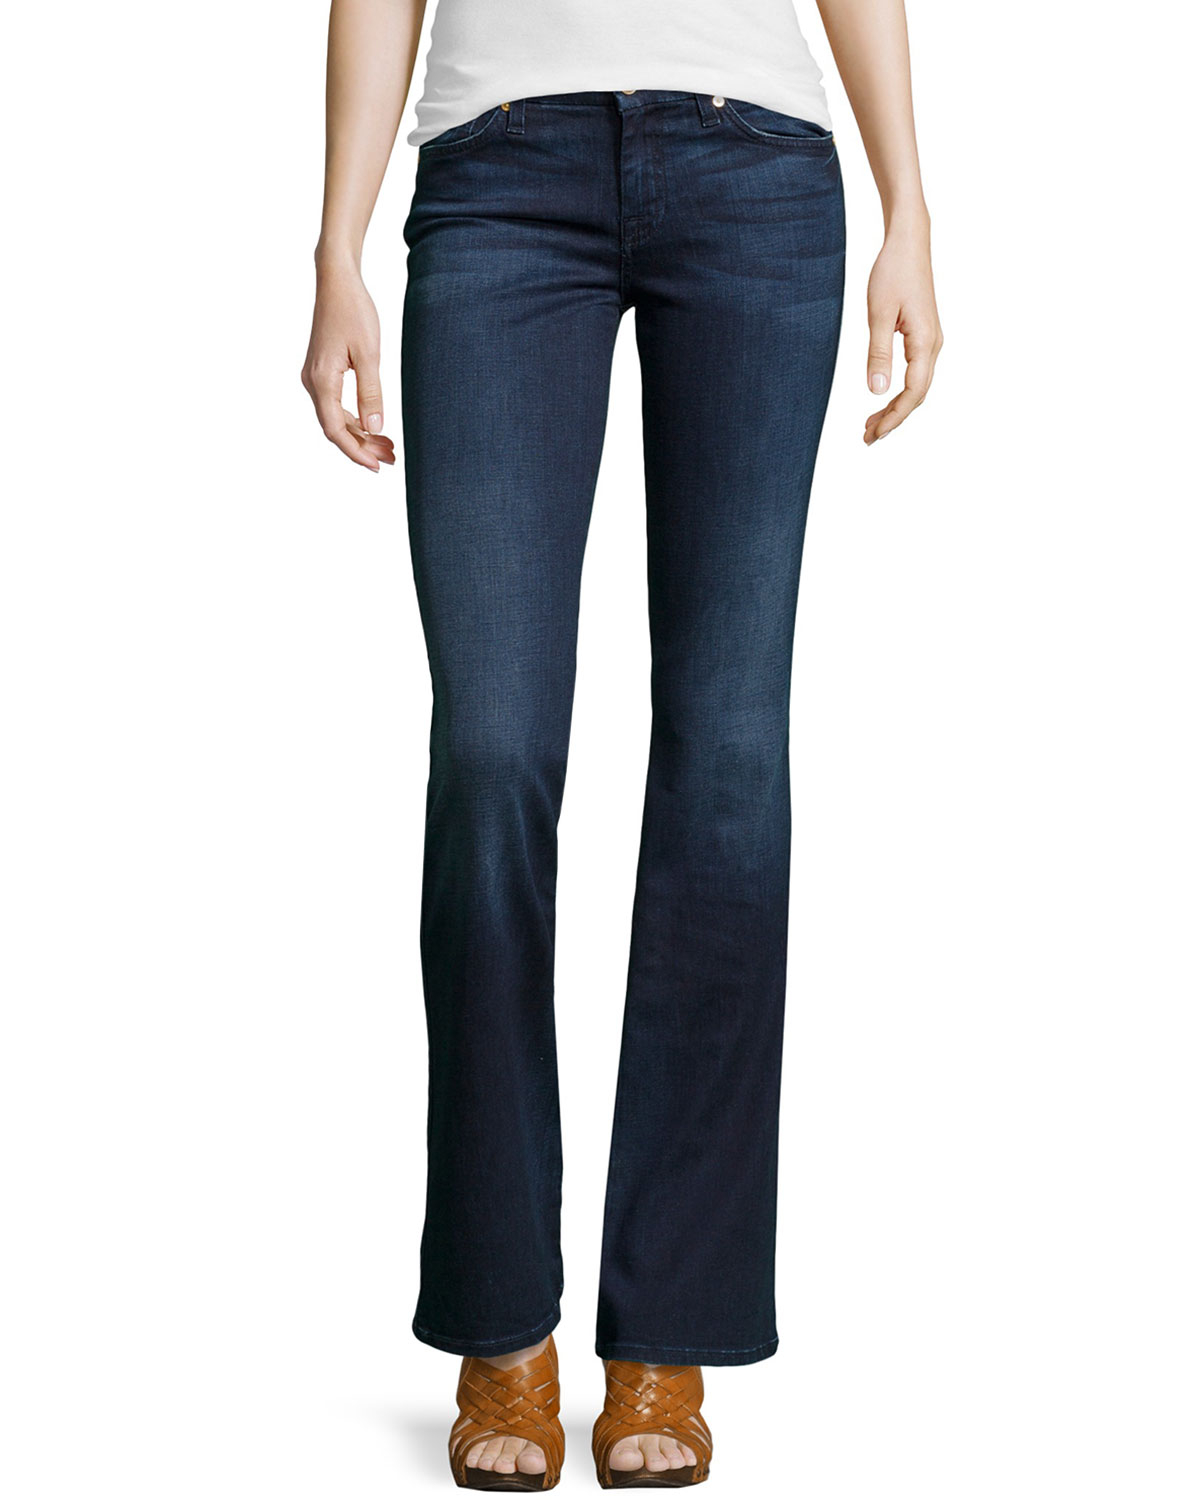 7 for all mankind roxanne a pocket boot cut jeans in blue. Black Bedroom Furniture Sets. Home Design Ideas